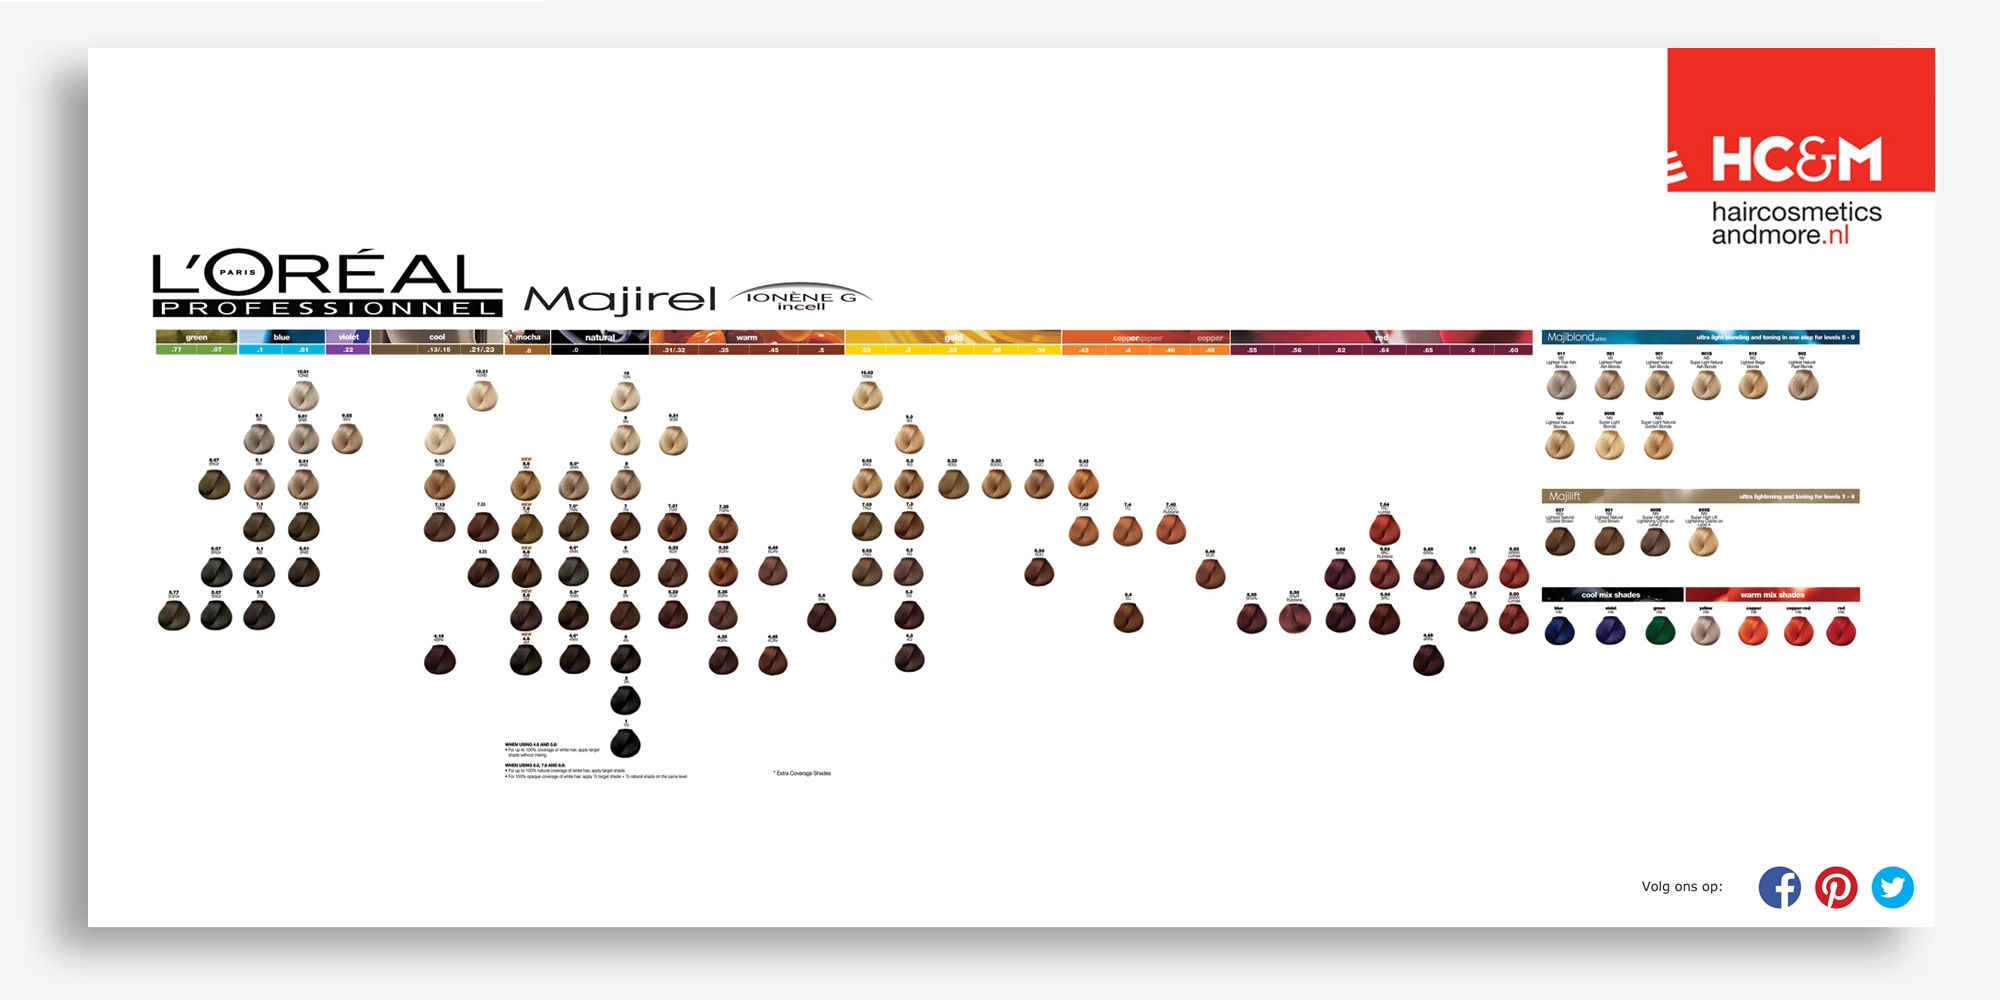 Majirel colour chart -  3 Top Majicontrast Majirel Mix Tattoo Tattoos In Lists For Pinterest